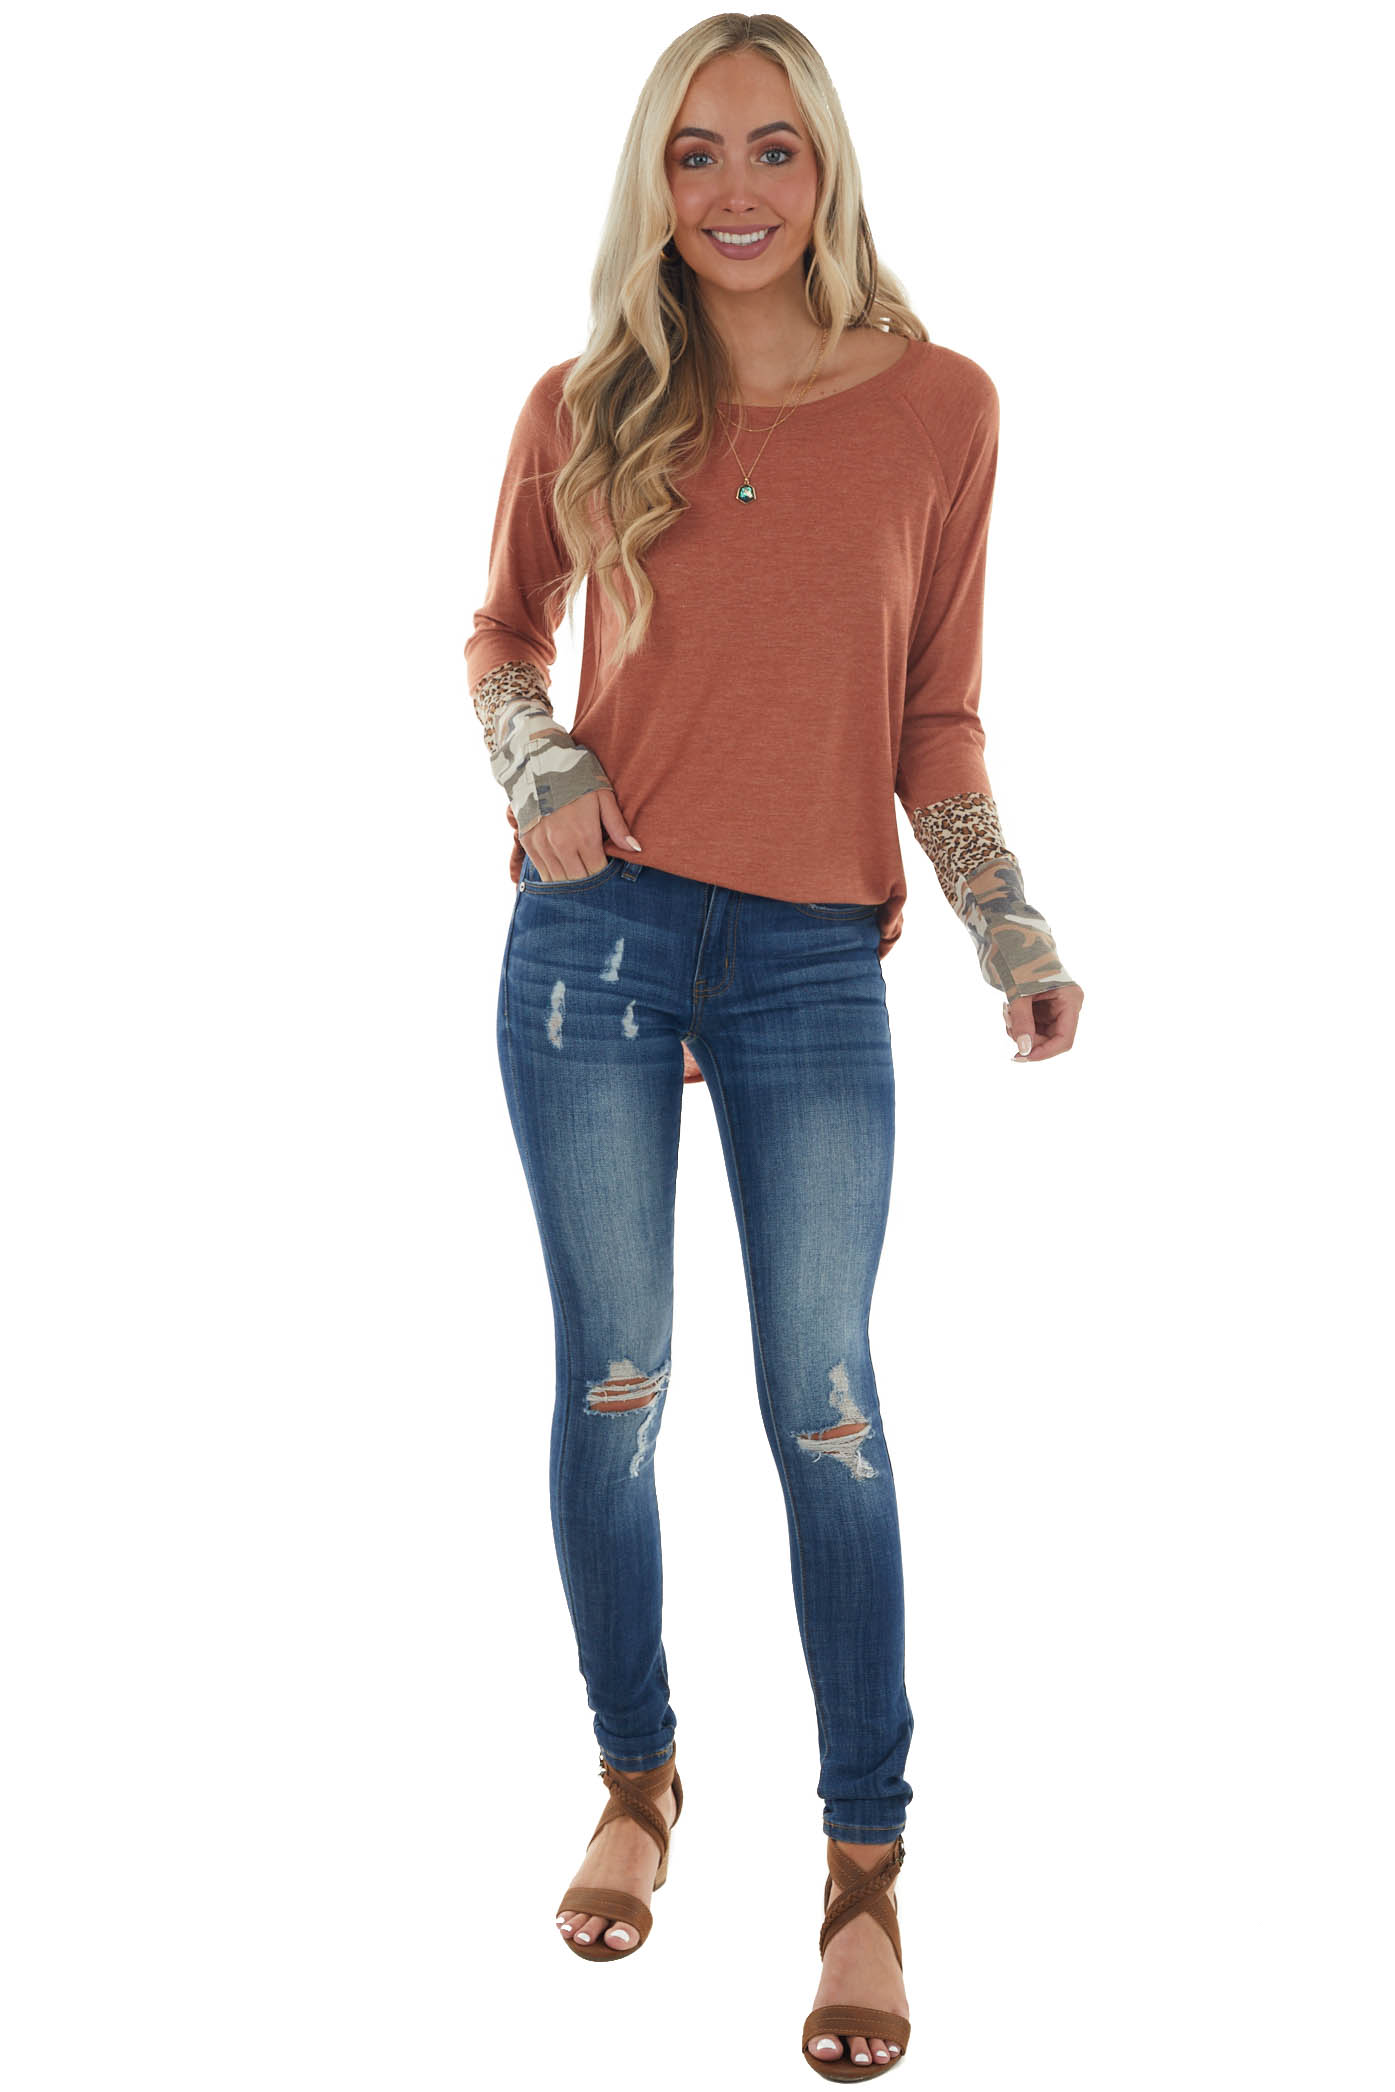 Heathered Ginger Multiprint Cuff Knit Top